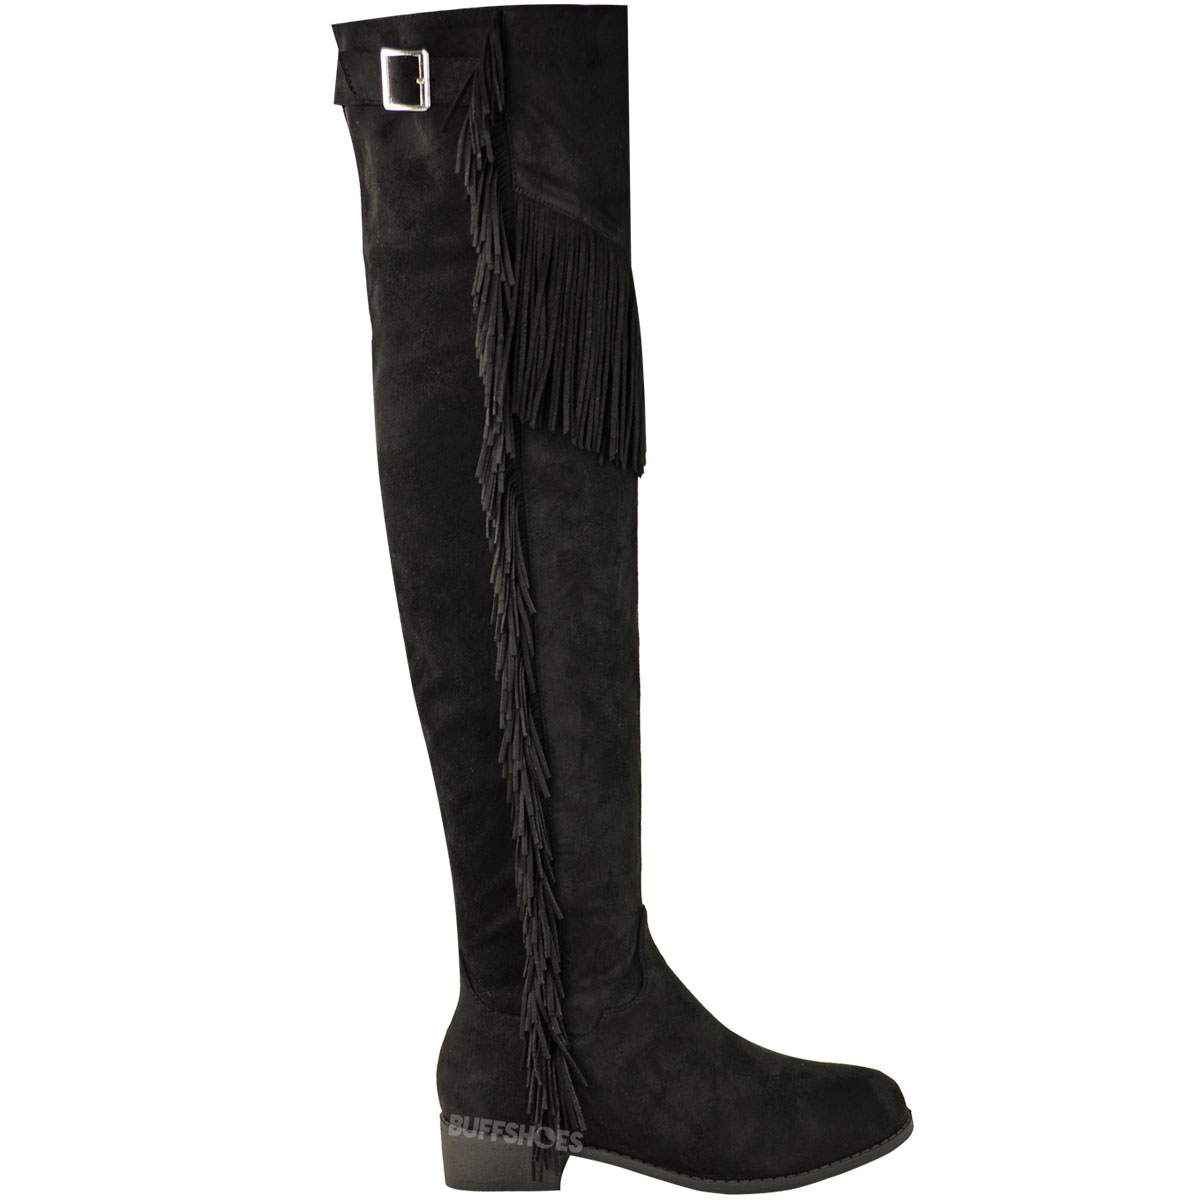 WOMENS LADIES OVER THE KNEE THIGH HIGH RIDING BOOTS FLAT TASSEL ...